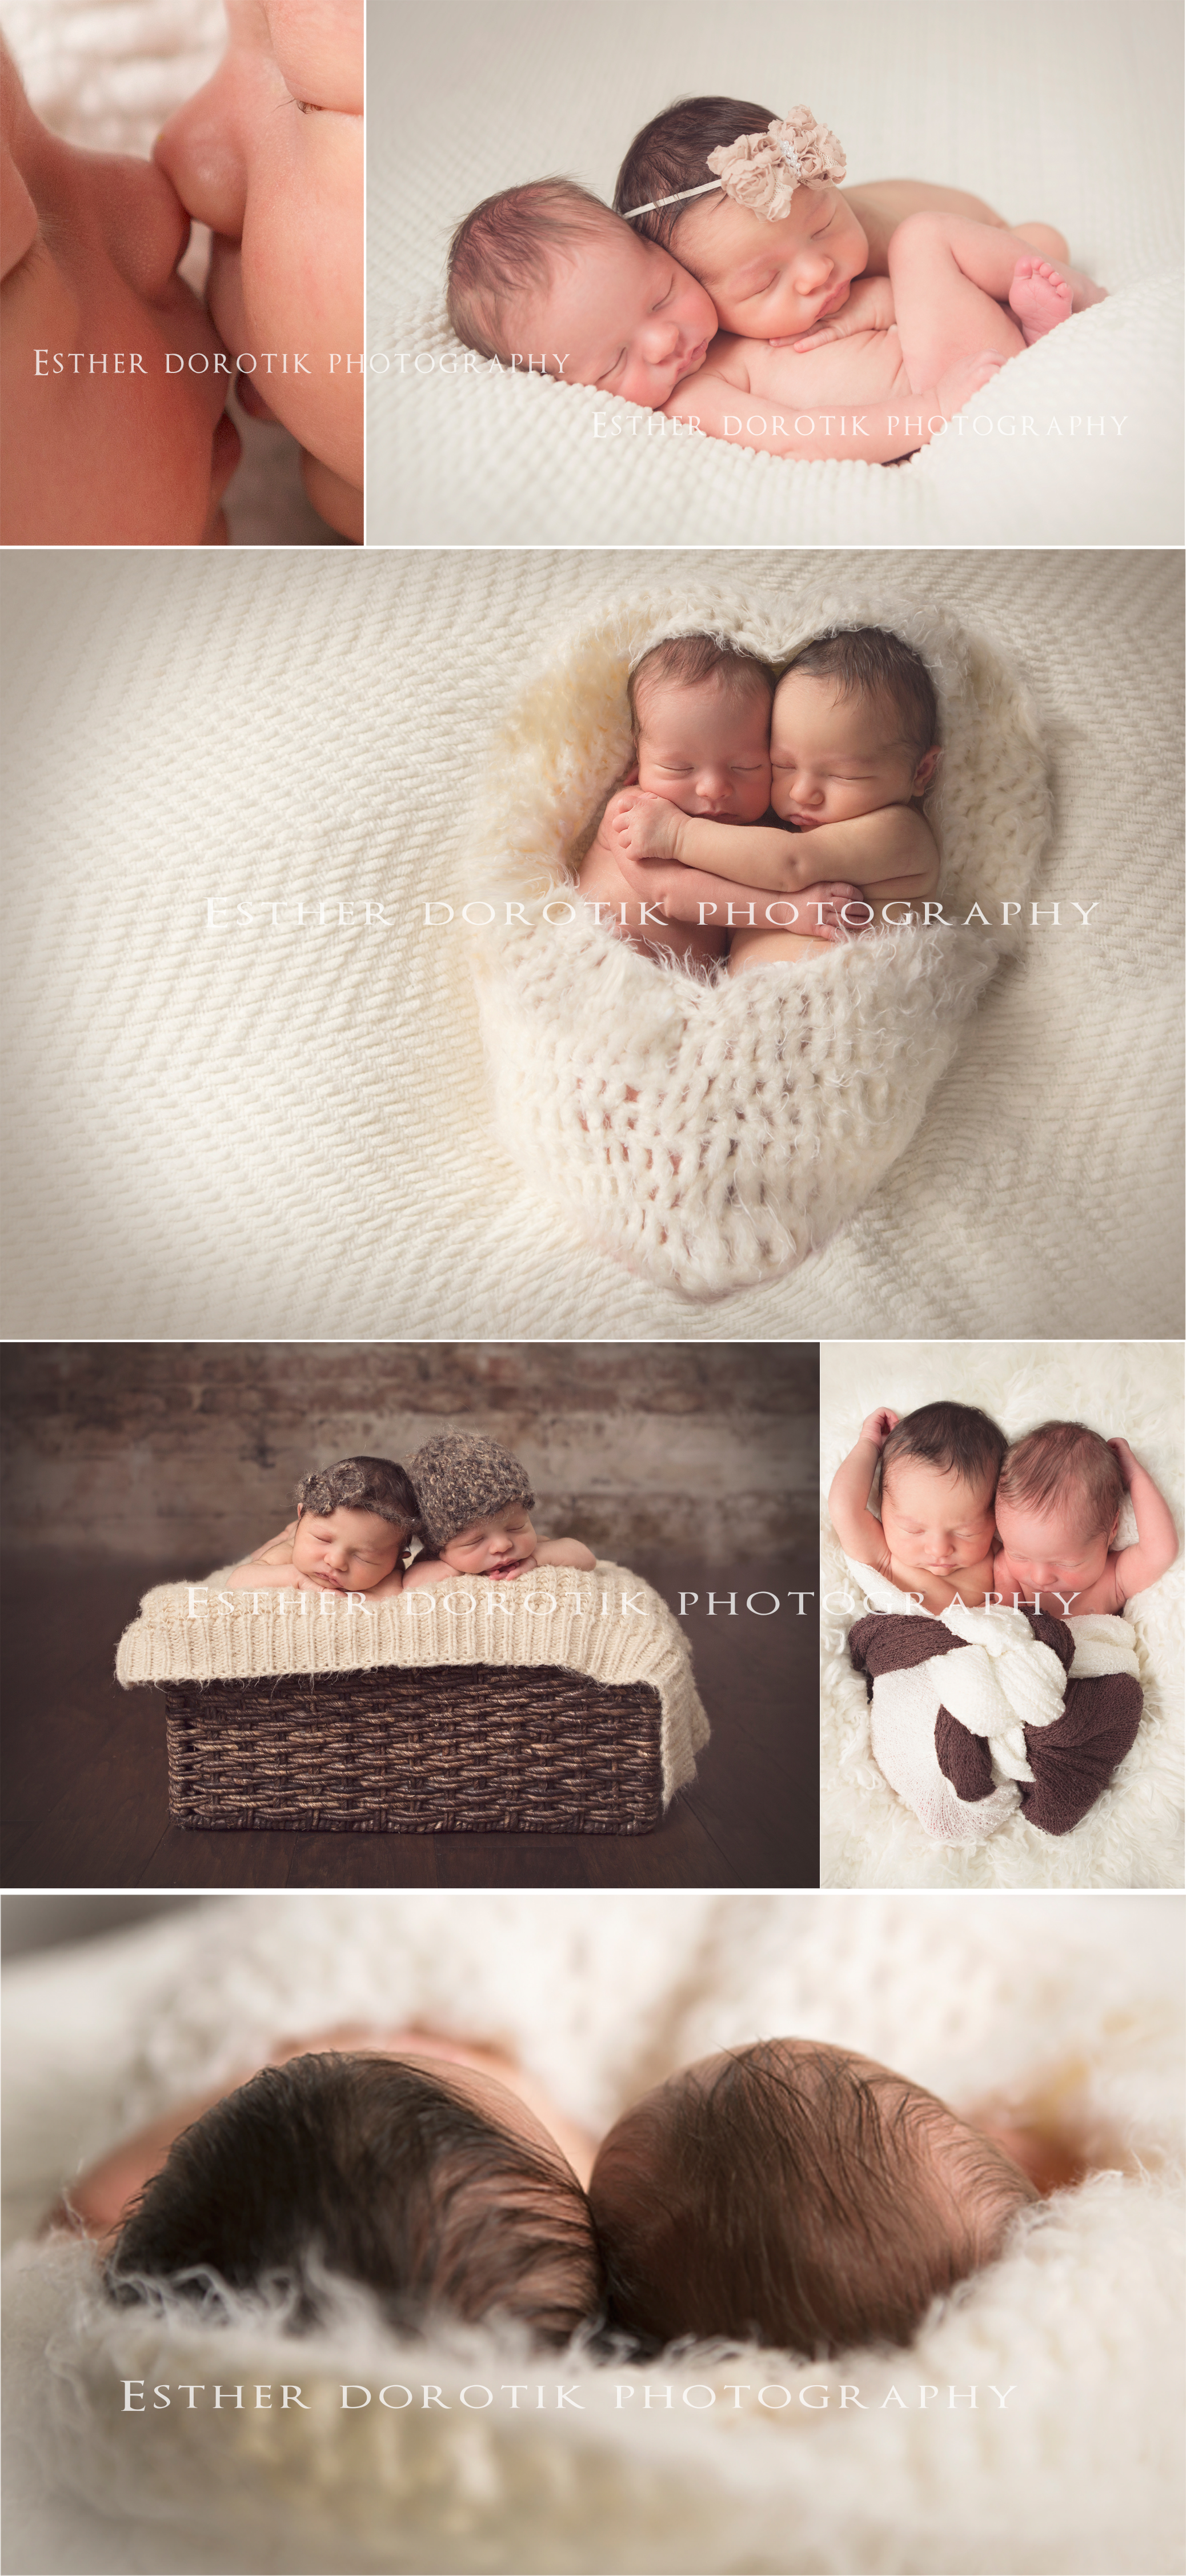 unique-twin-photography-of-newborn-girl-and-boy-using-baskets-knit-wraps-by-Dallas-photographer